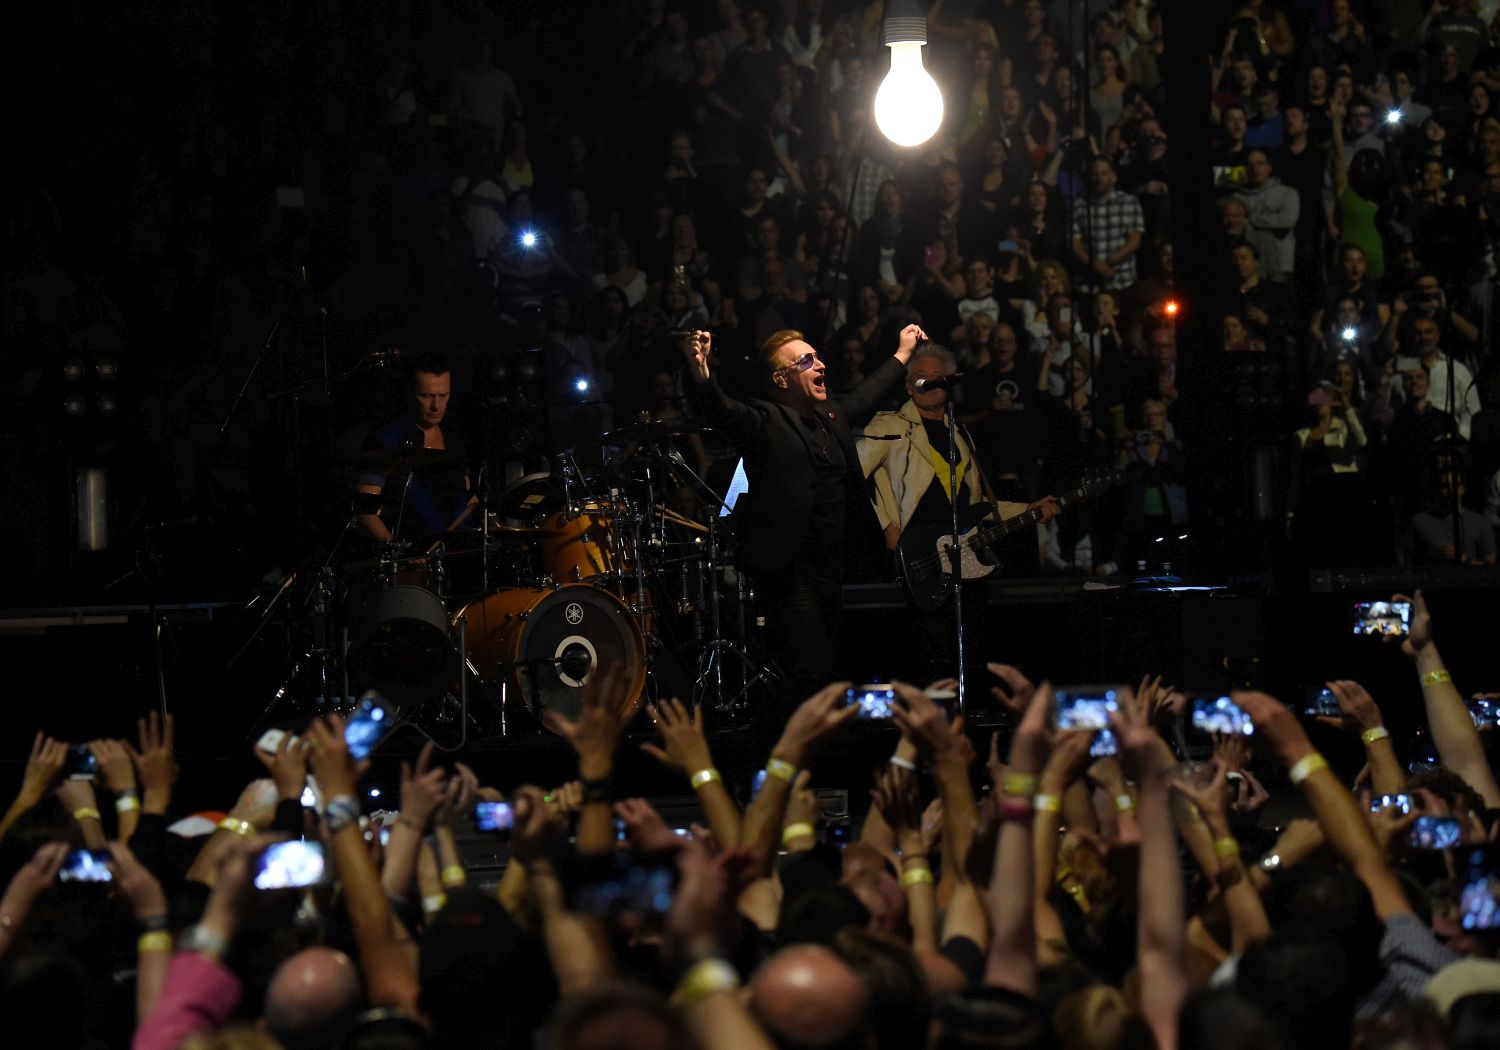 VANCOUVER, BC - MAY 14:  (L-R) Musicians Larry Mullen Jr., Bono and Adam Clayton of U2 perform onstage during the U2 iNNOCENCE + eXPERIENCE tour opener in Vancouver at Rogers Arena on May 14, 2015 in Vancouver, Canada.  (Photo by Kevin Mazur/WireImage) *** Local Caption *** Larry Mullen Jr.;Bono;Adam Clayton